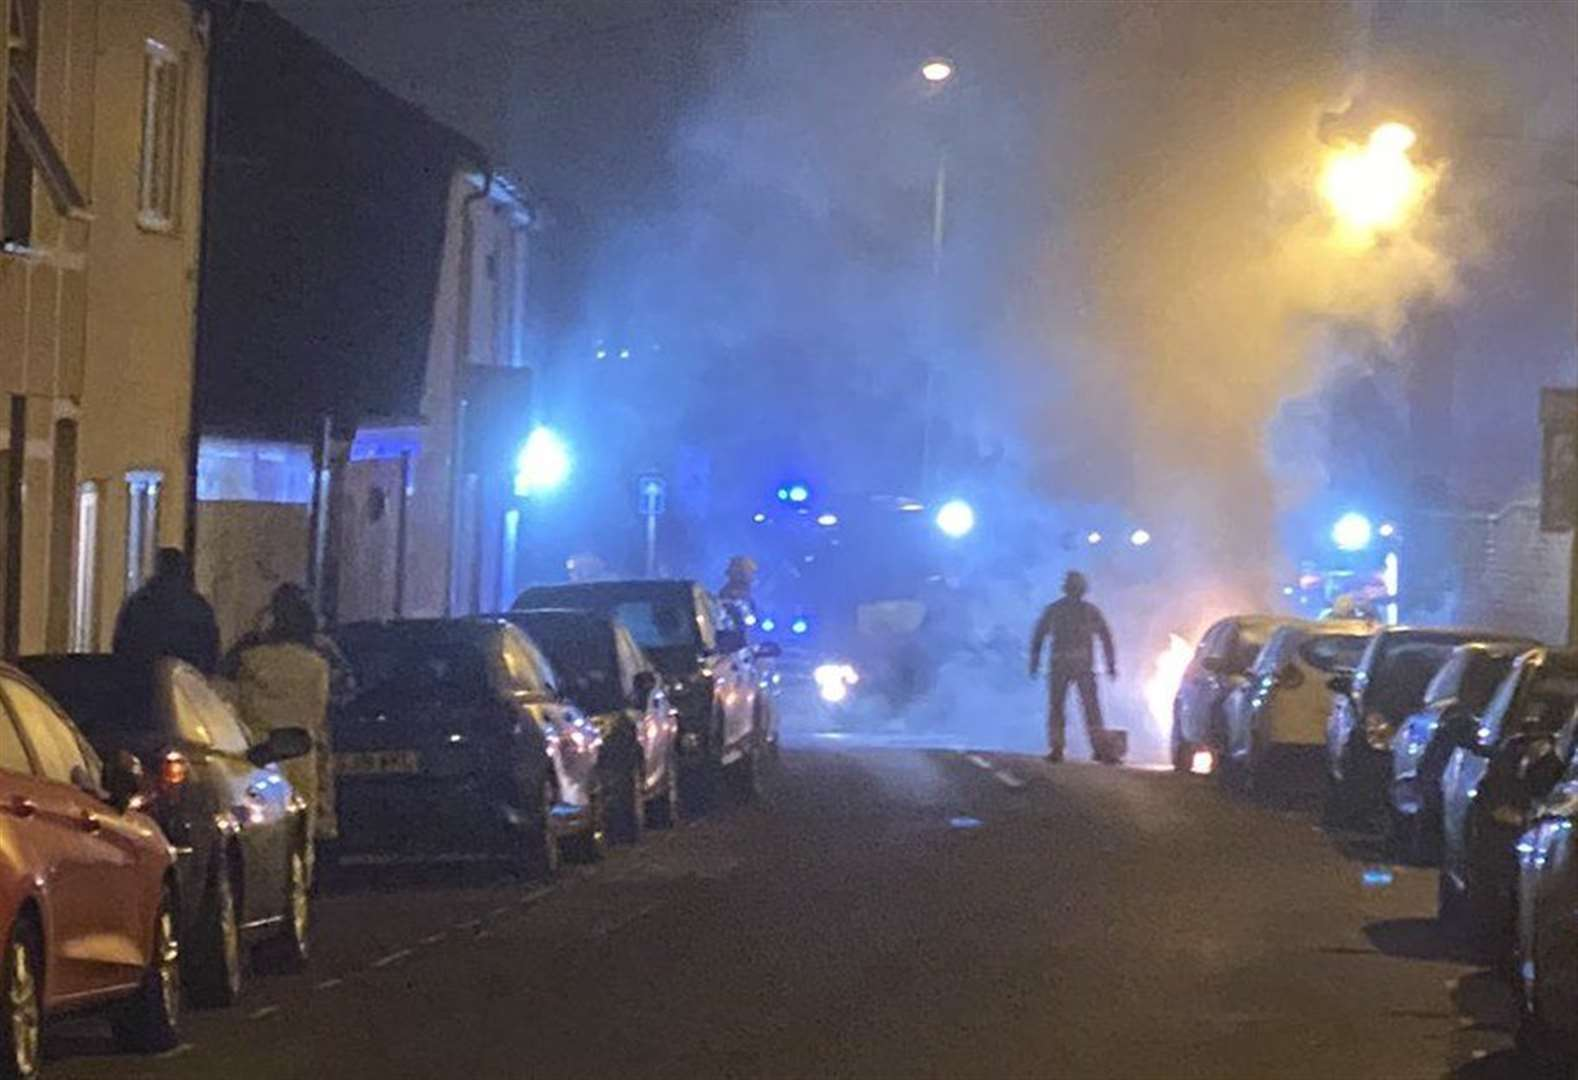 Vehicles torched in nearby streets